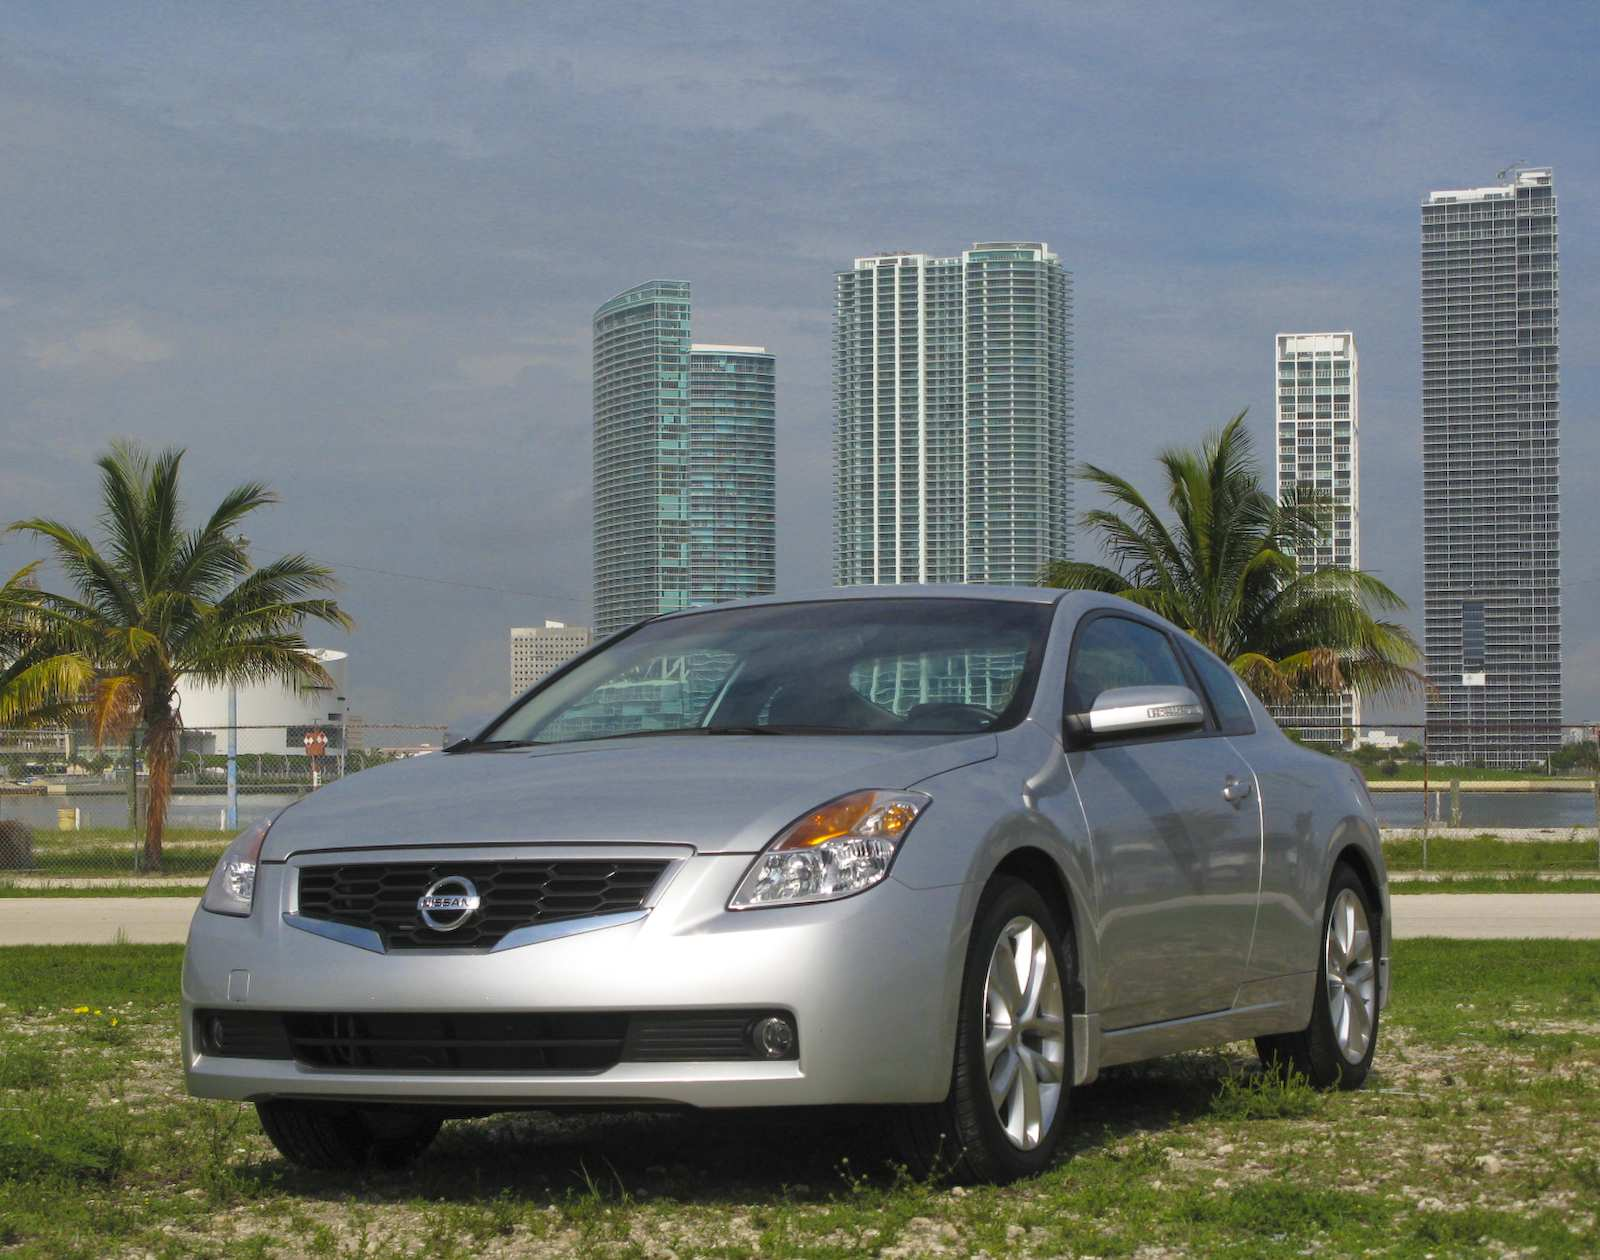 51 New 2009 Nissan Altima Coupe Images for 2009 Nissan Altima Coupe